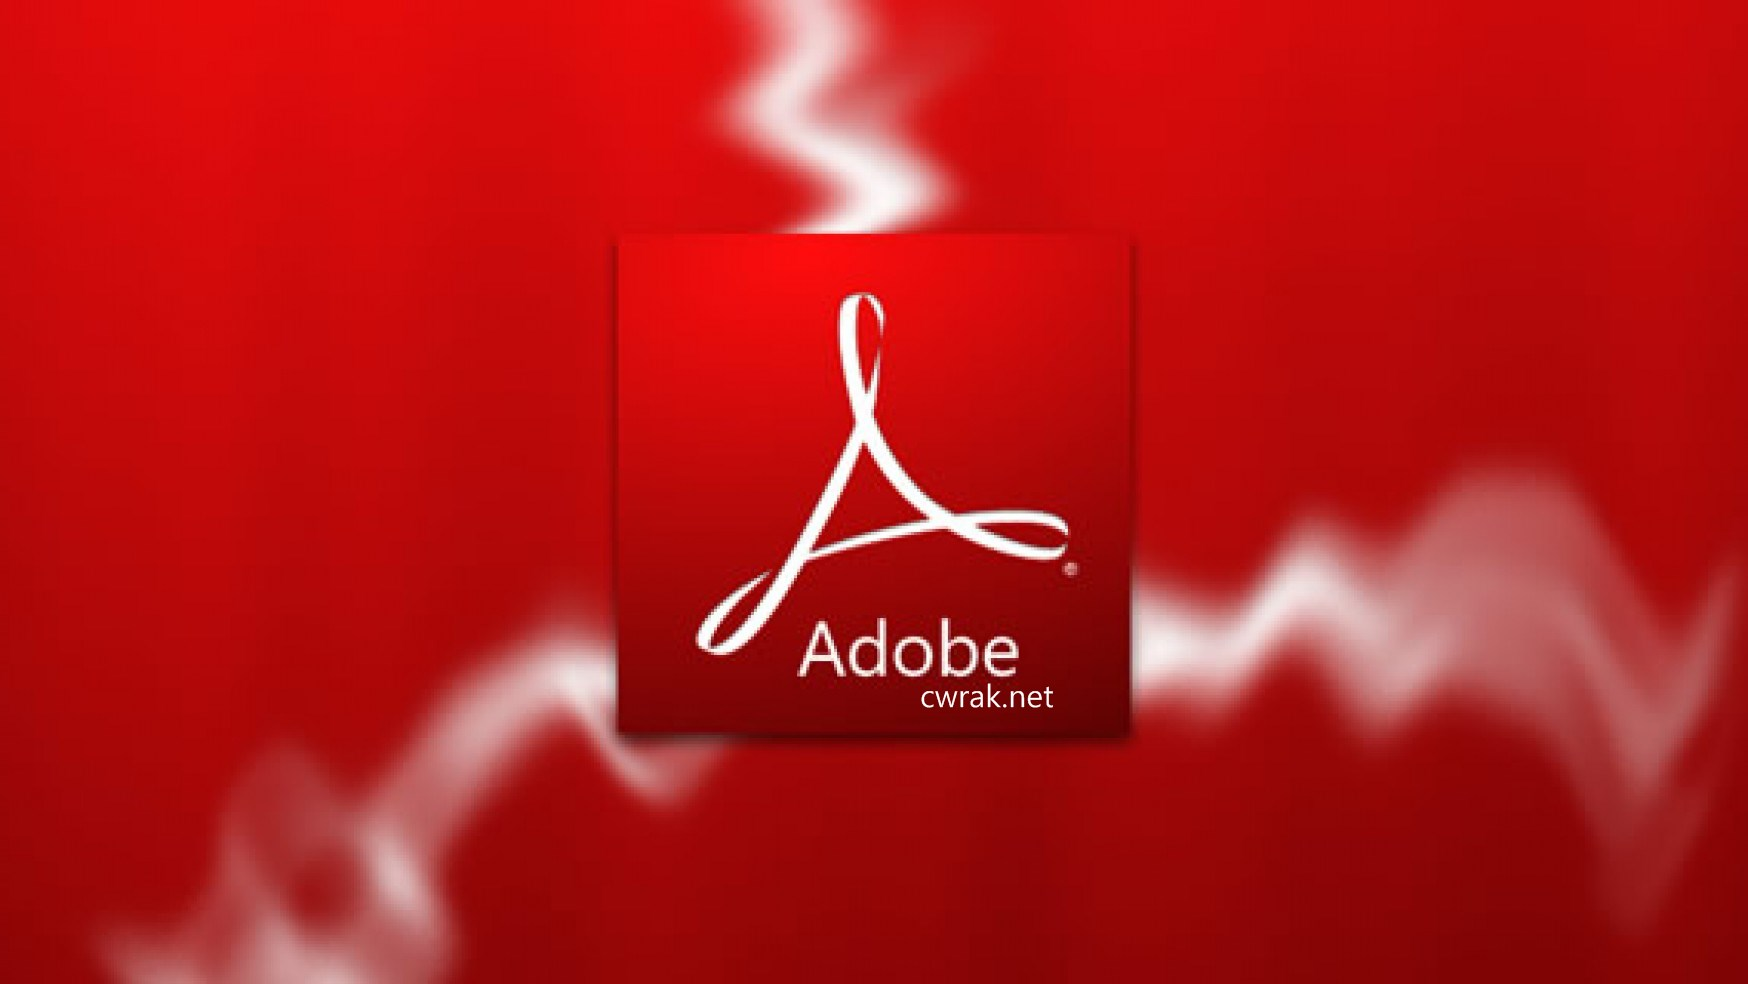 Adobe Flash Player 31.00.122 Crack Patch Keygen Wind 7 Free Download